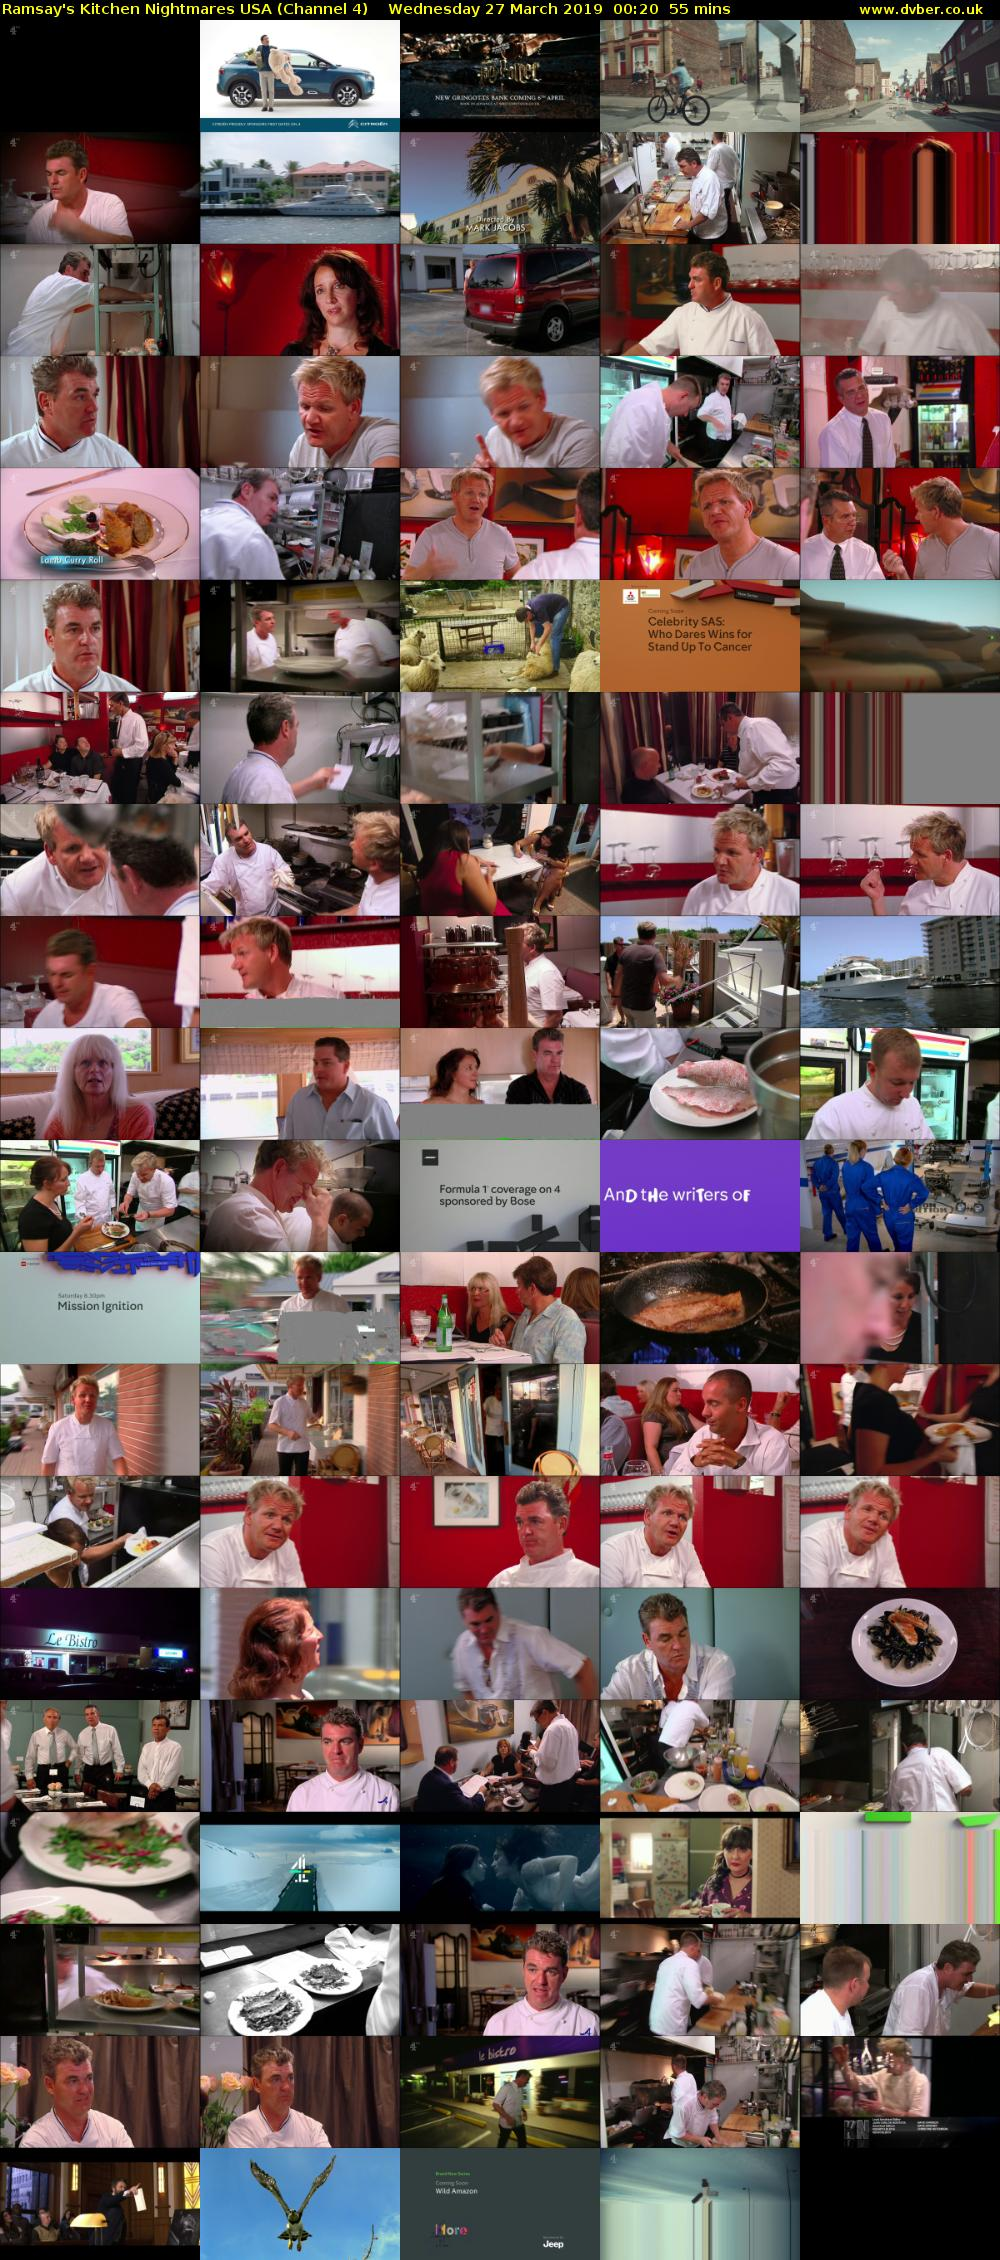 Ramsay's Kitchen Nightmares USA (Channel 4) Wednesday 27 March 2019 00:20 - 01:15